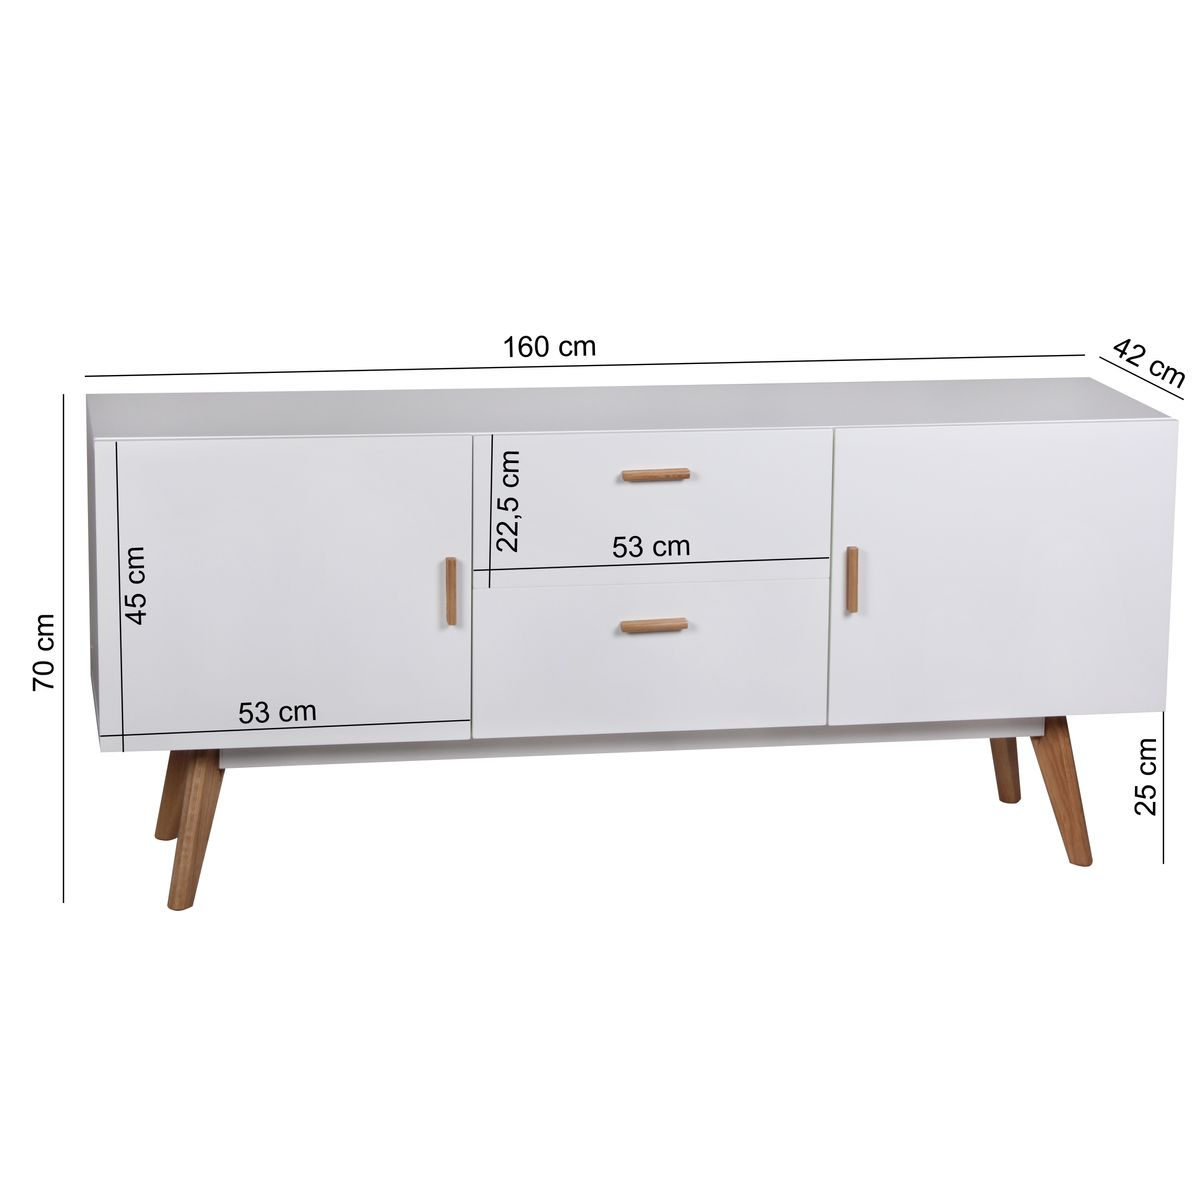 finebuy retro sideboard scanio mdf holz 2 schubladen. Black Bedroom Furniture Sets. Home Design Ideas